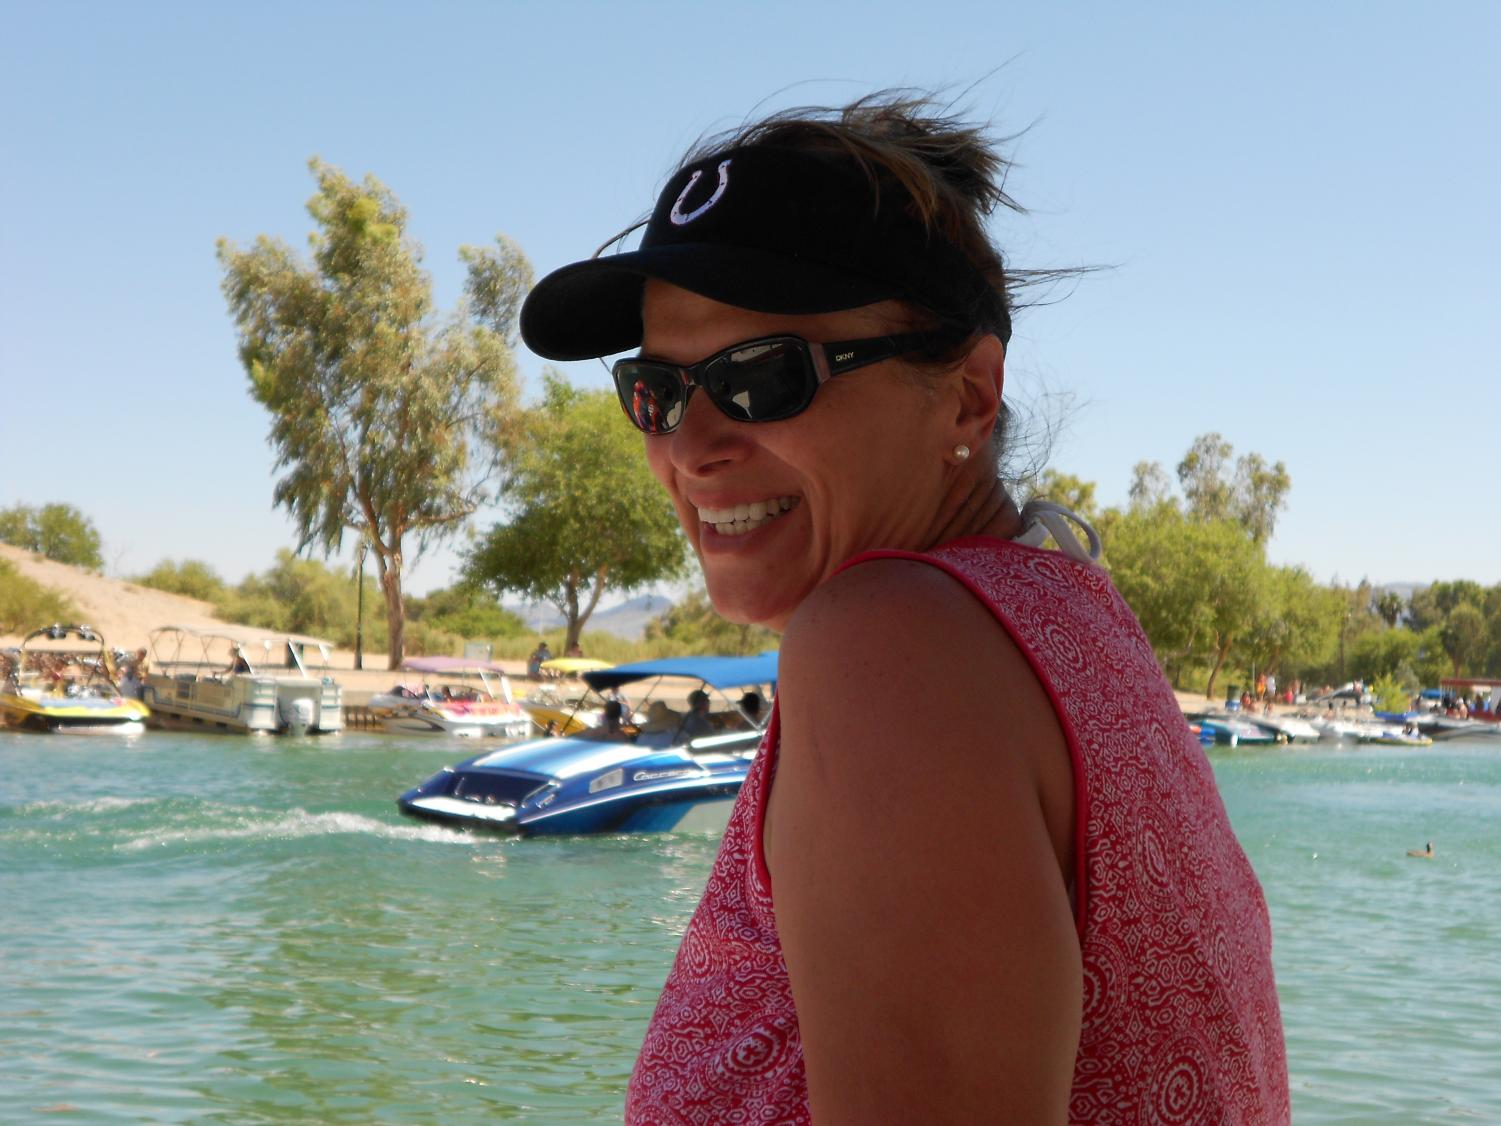 My+mom+during+one+of+my+family%27s+summer+trips+to+Lake+Havasu%2C+Arizona.+Many+of+our+family+trips+revolved+around+boating+during+my+teenage+years.%0A